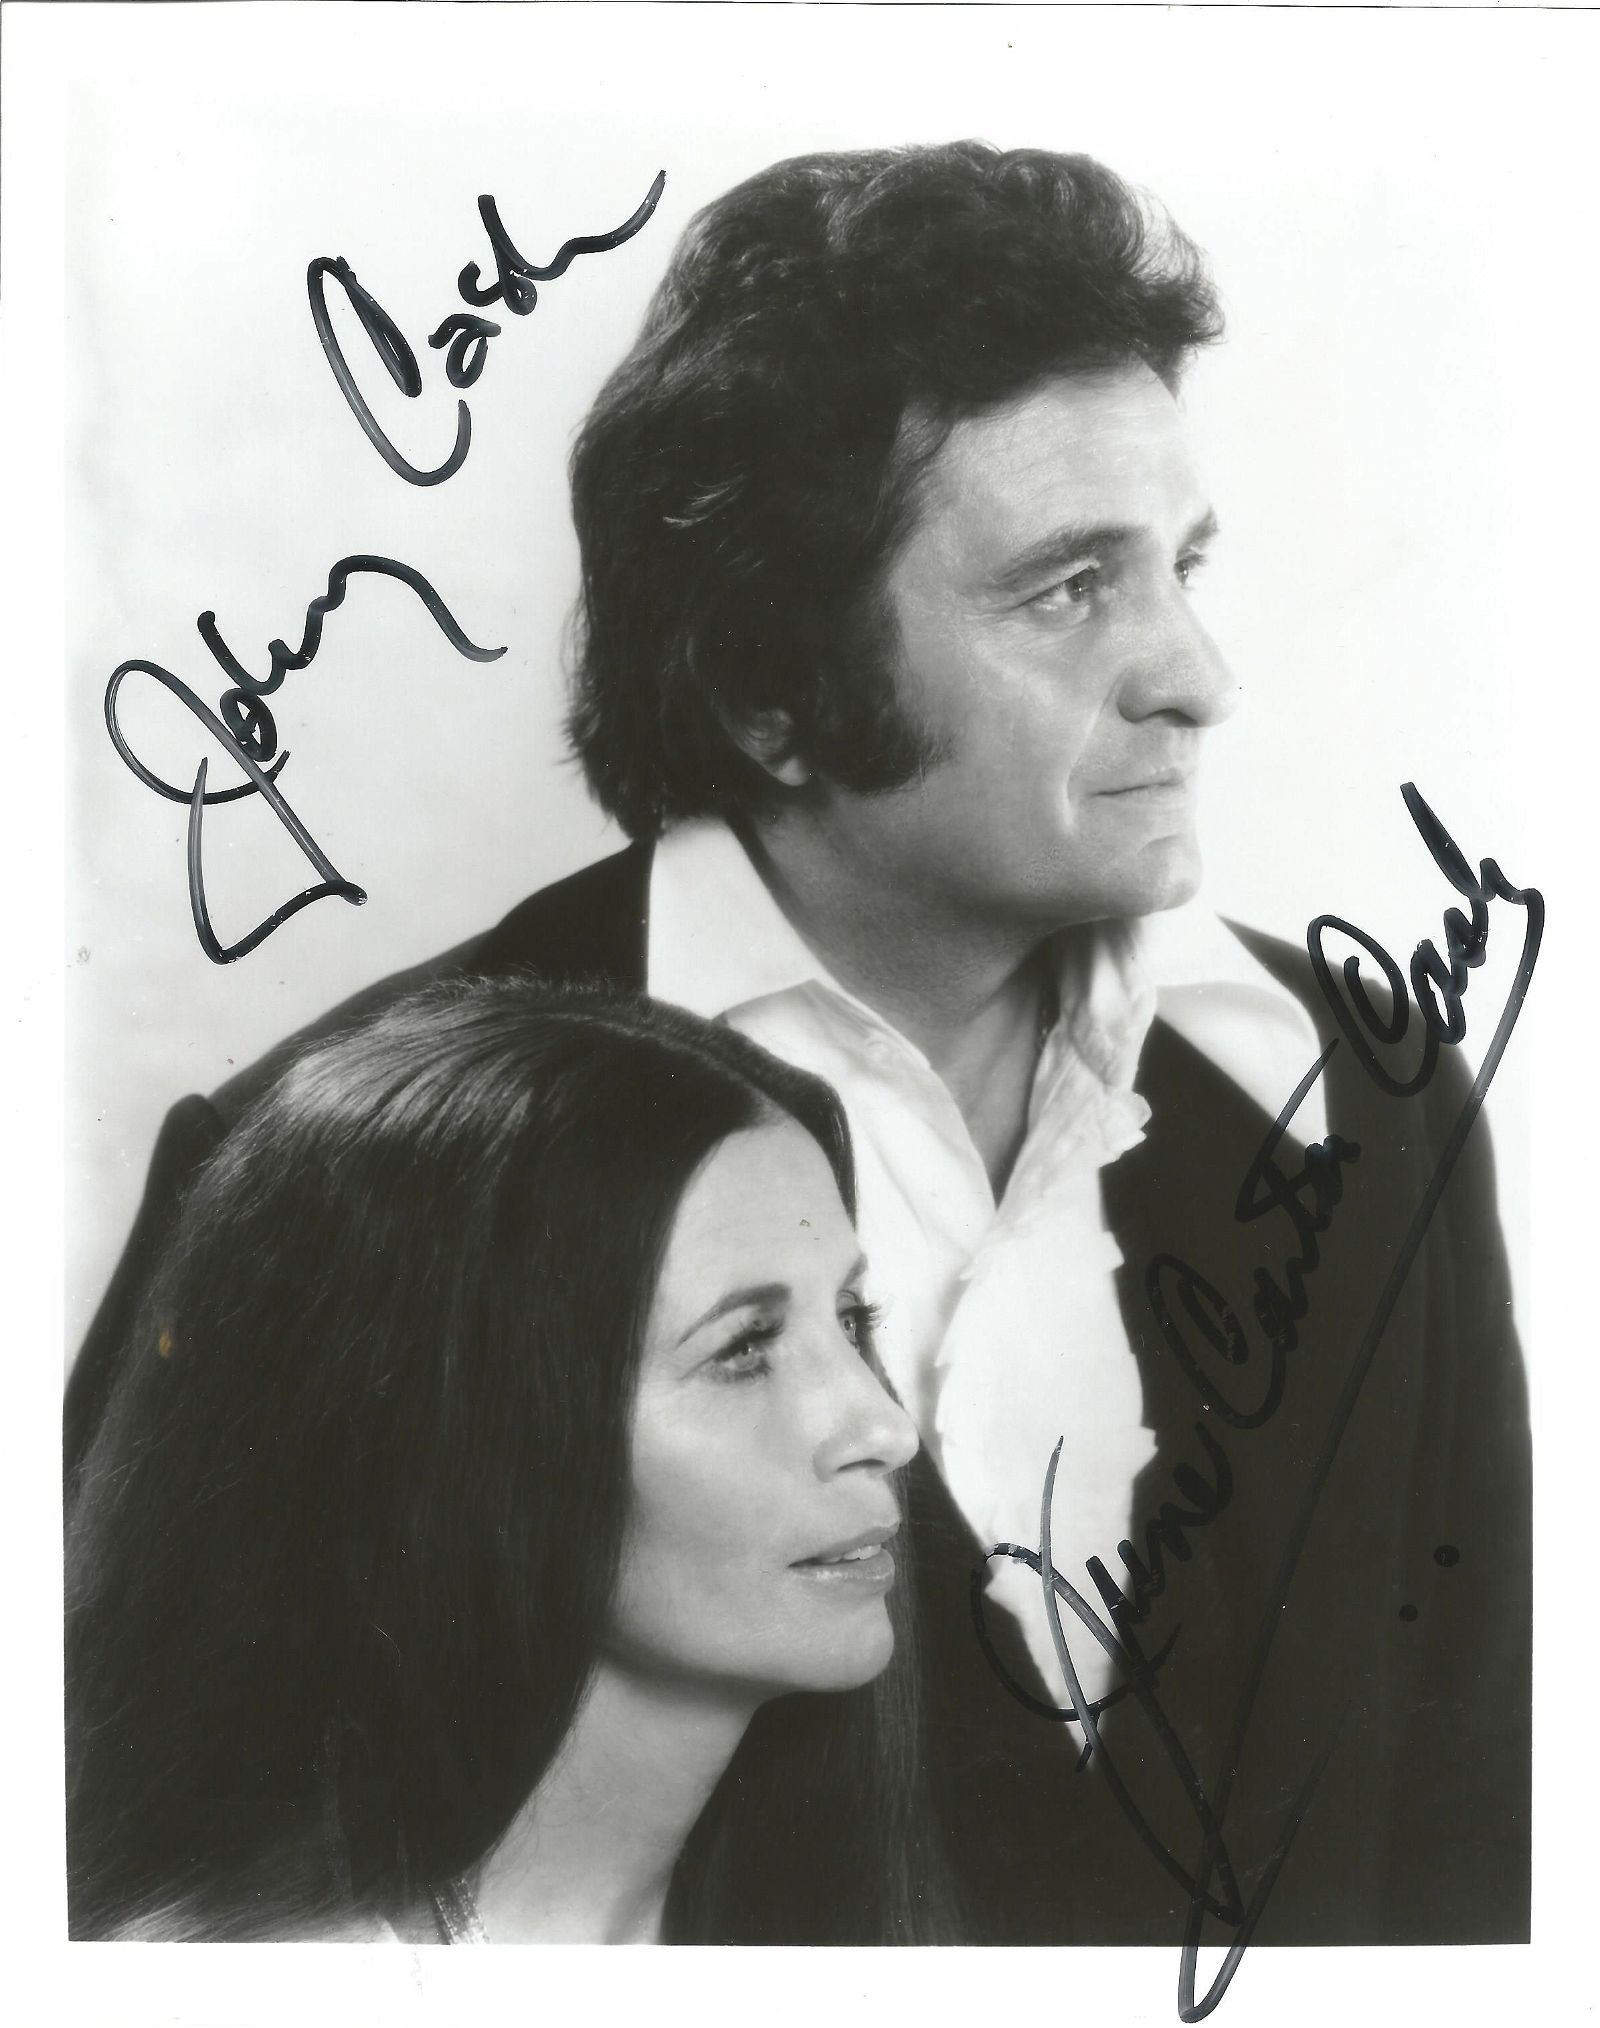 Johnny Cash and June Carter Cash signed 10x8 black and